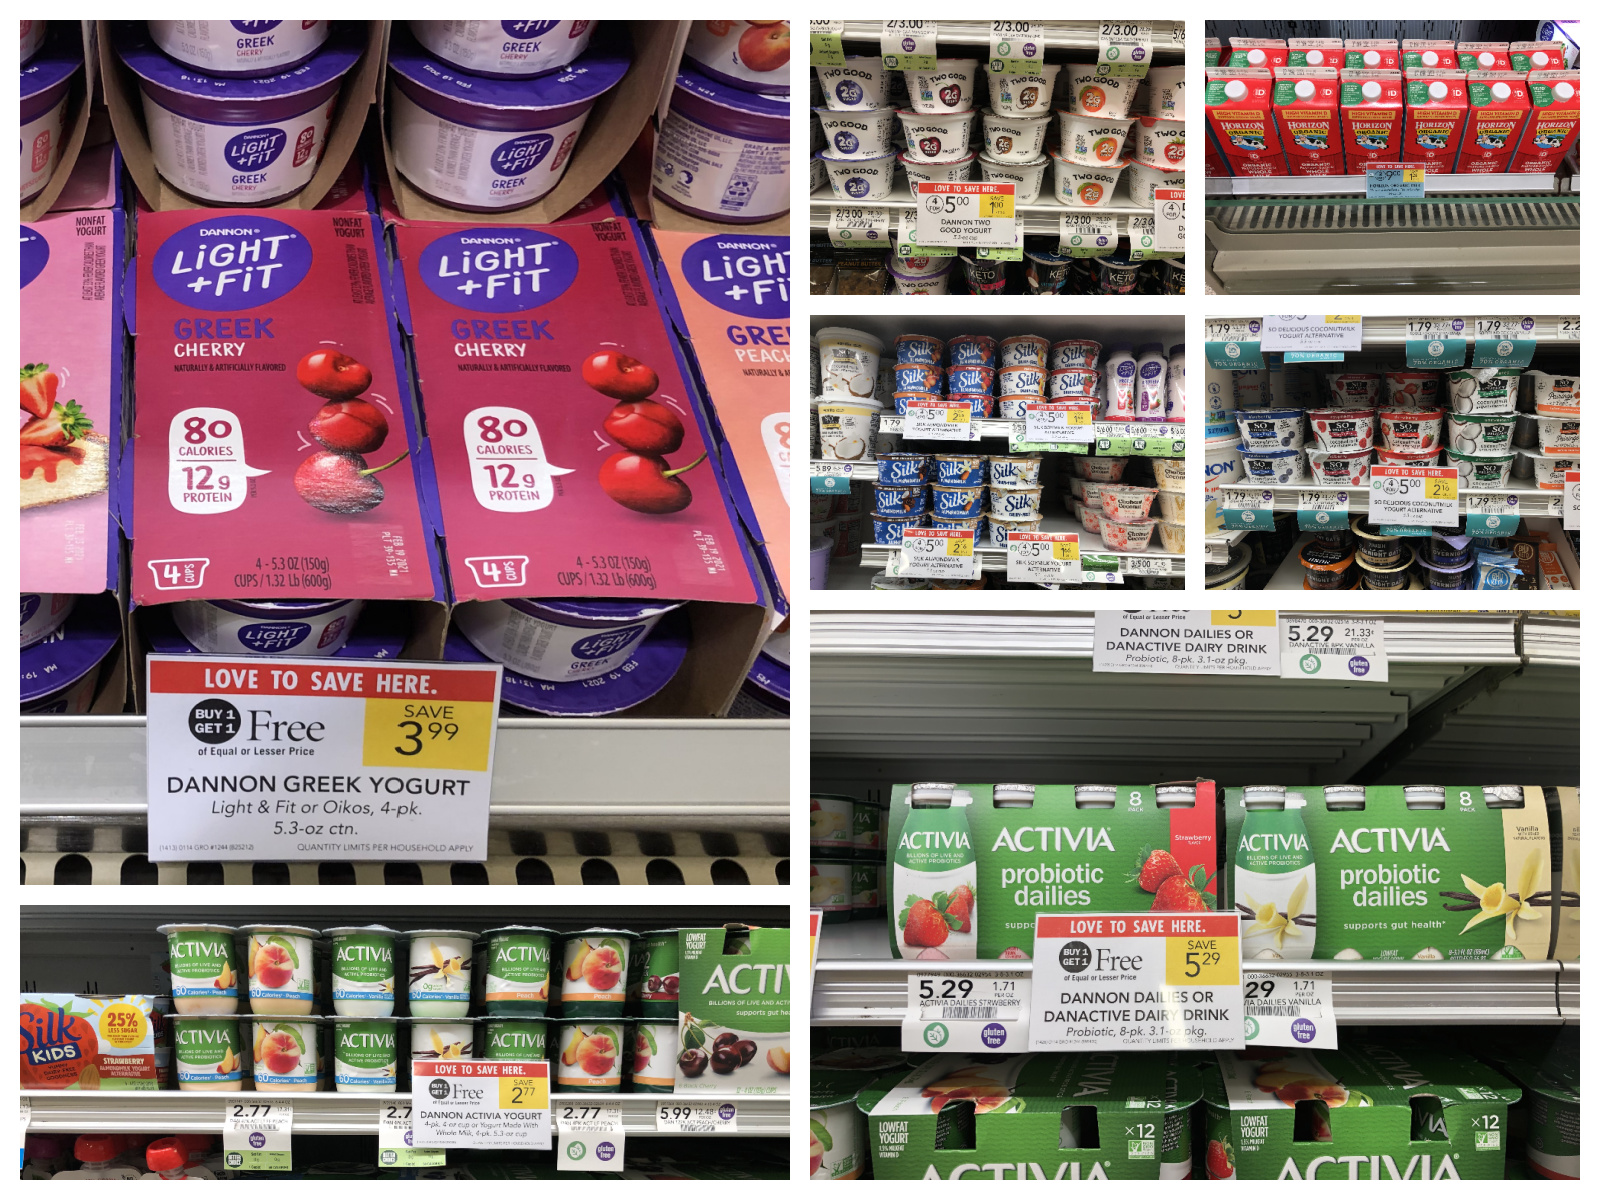 Fantastic Week To Earn Gift Cards With The Crave & Save Program At Publix on I Heart Publix